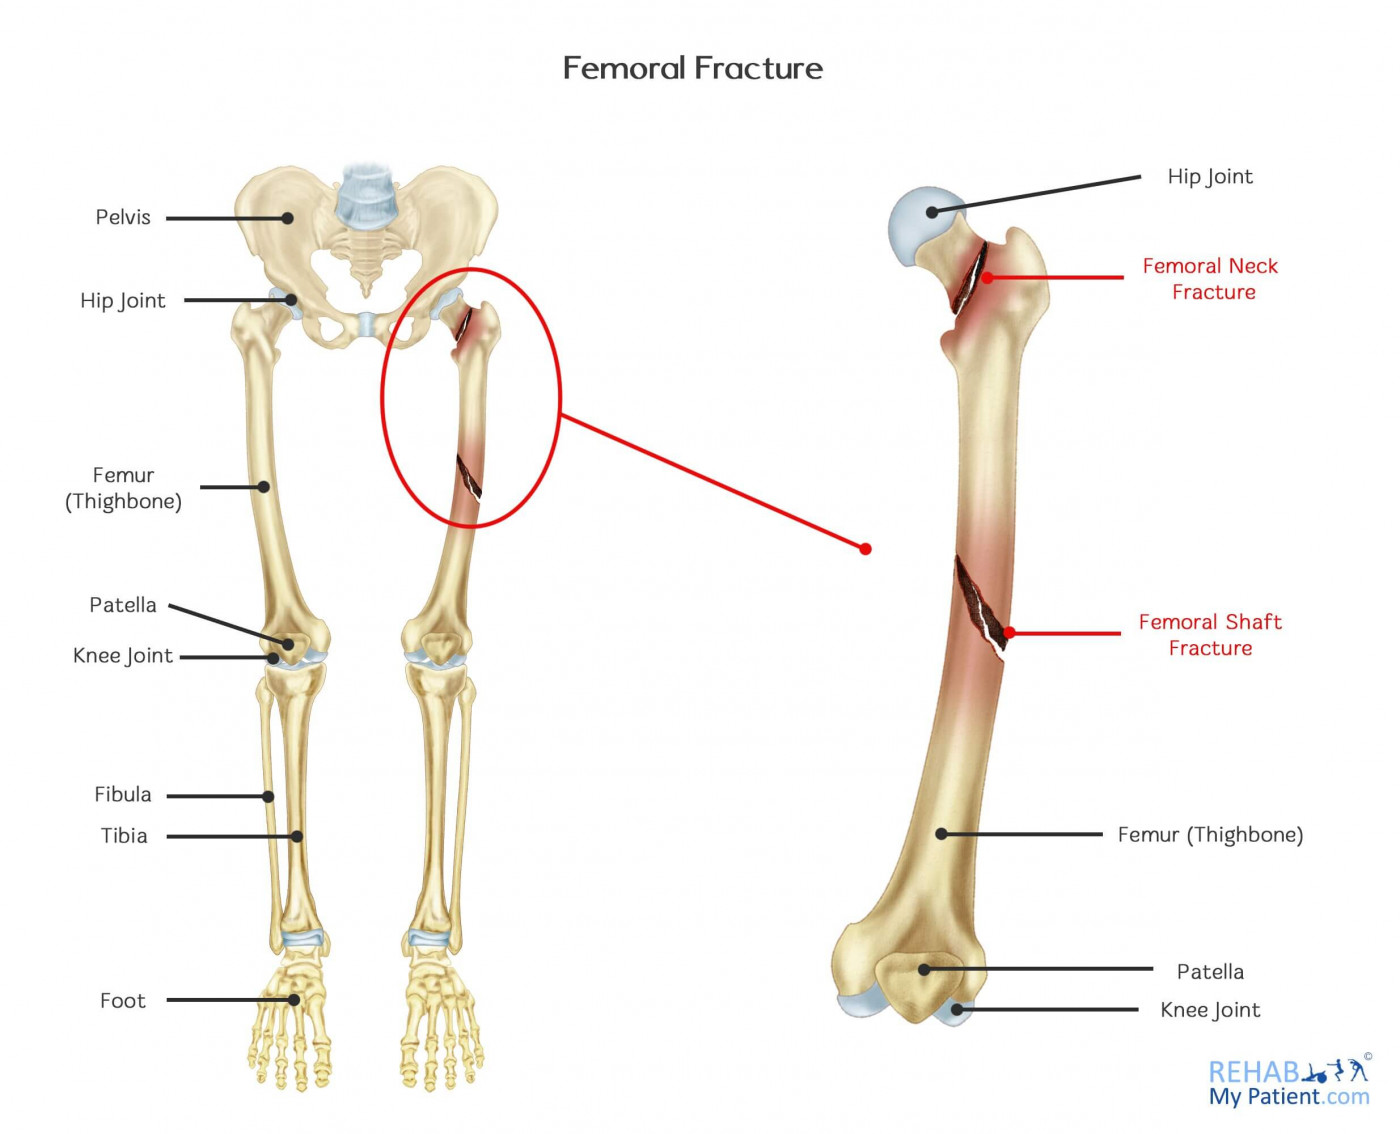 Femoral Fracture